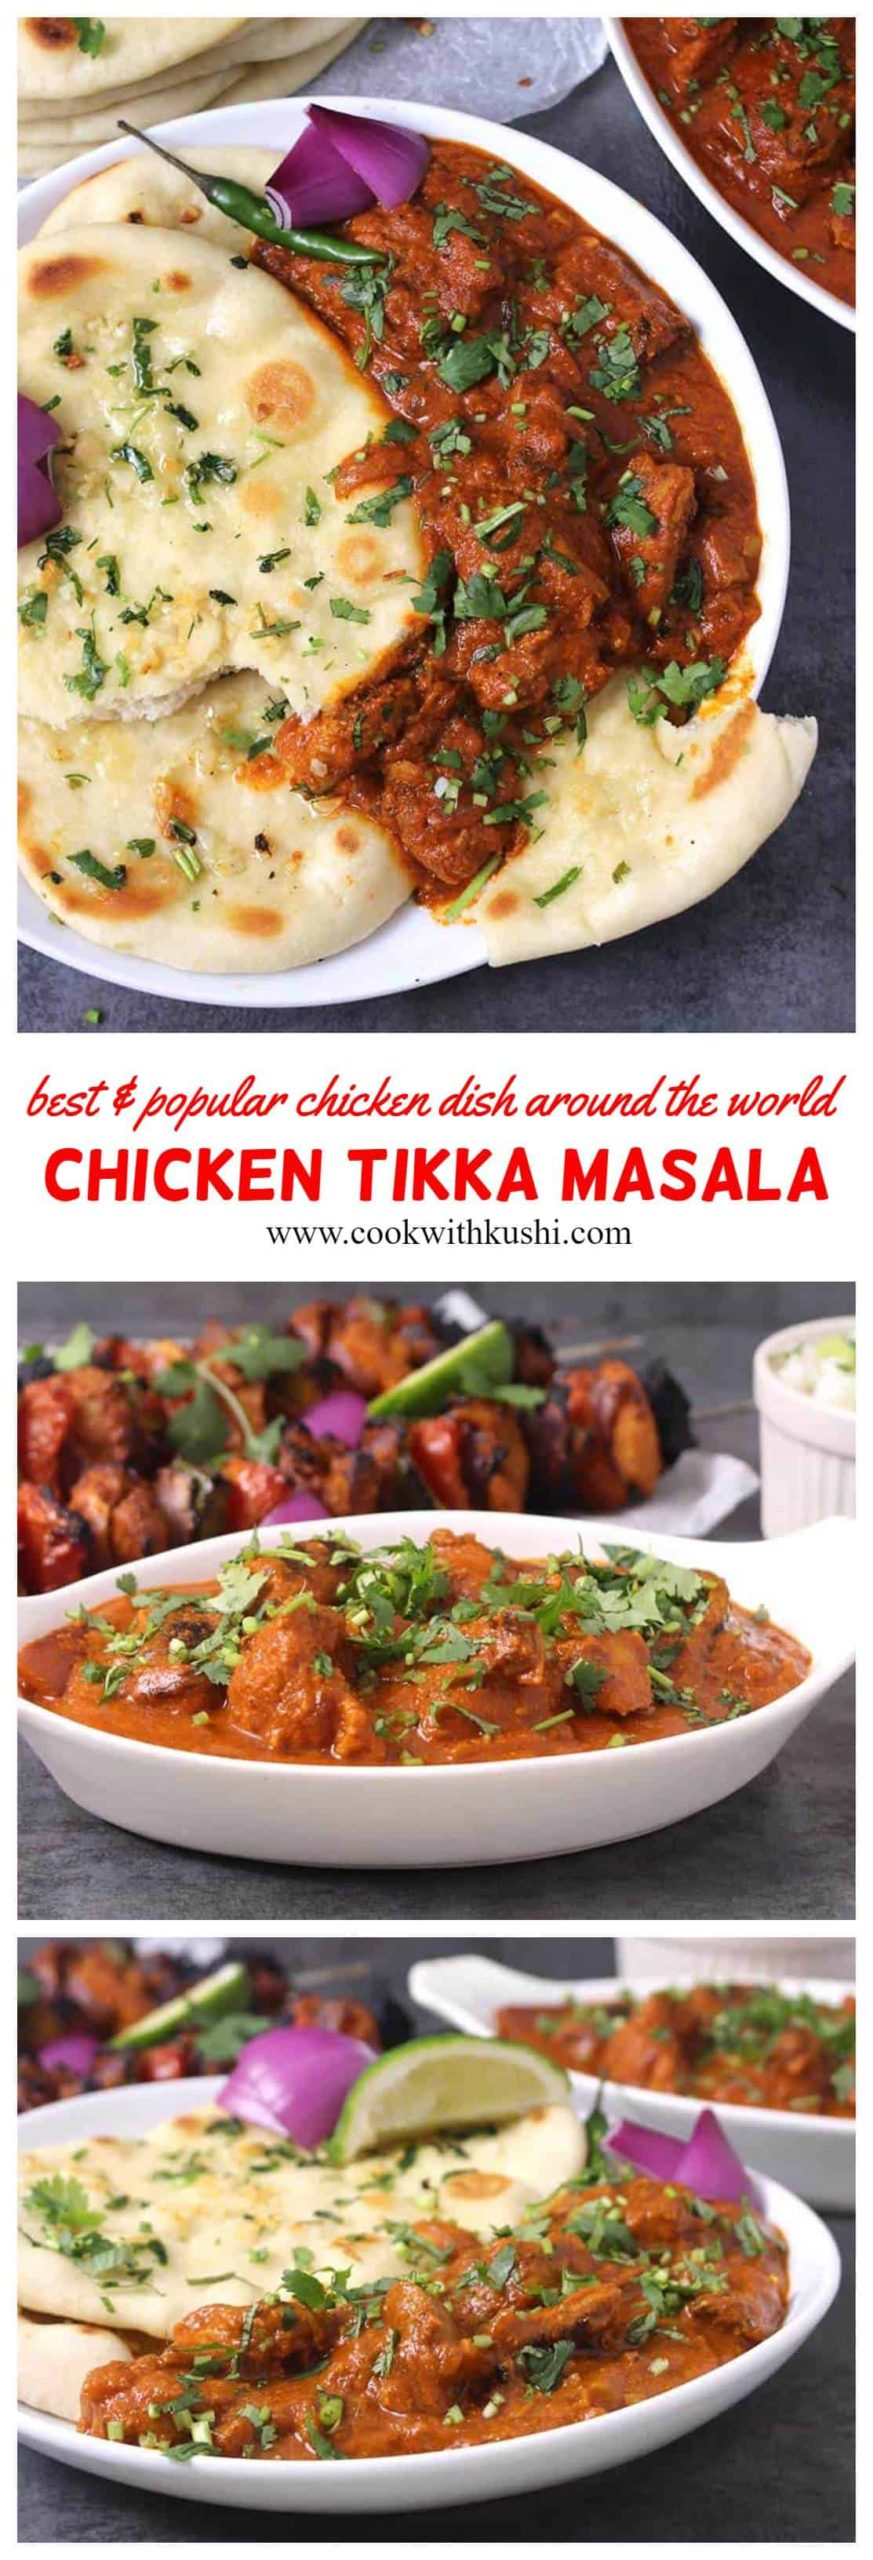 Chicken Tikka Masala is a addictive, classic dish for lunch or dinner where the chicken marinated in aromatic spices is first grilled and then mixed in a finger licking sauce (masala). #chickentikkamasala #tikkamasala #tikkasauce #tandoorichicken #chickenkebab #grilledchicken #naanandcurry #rotiandgravy